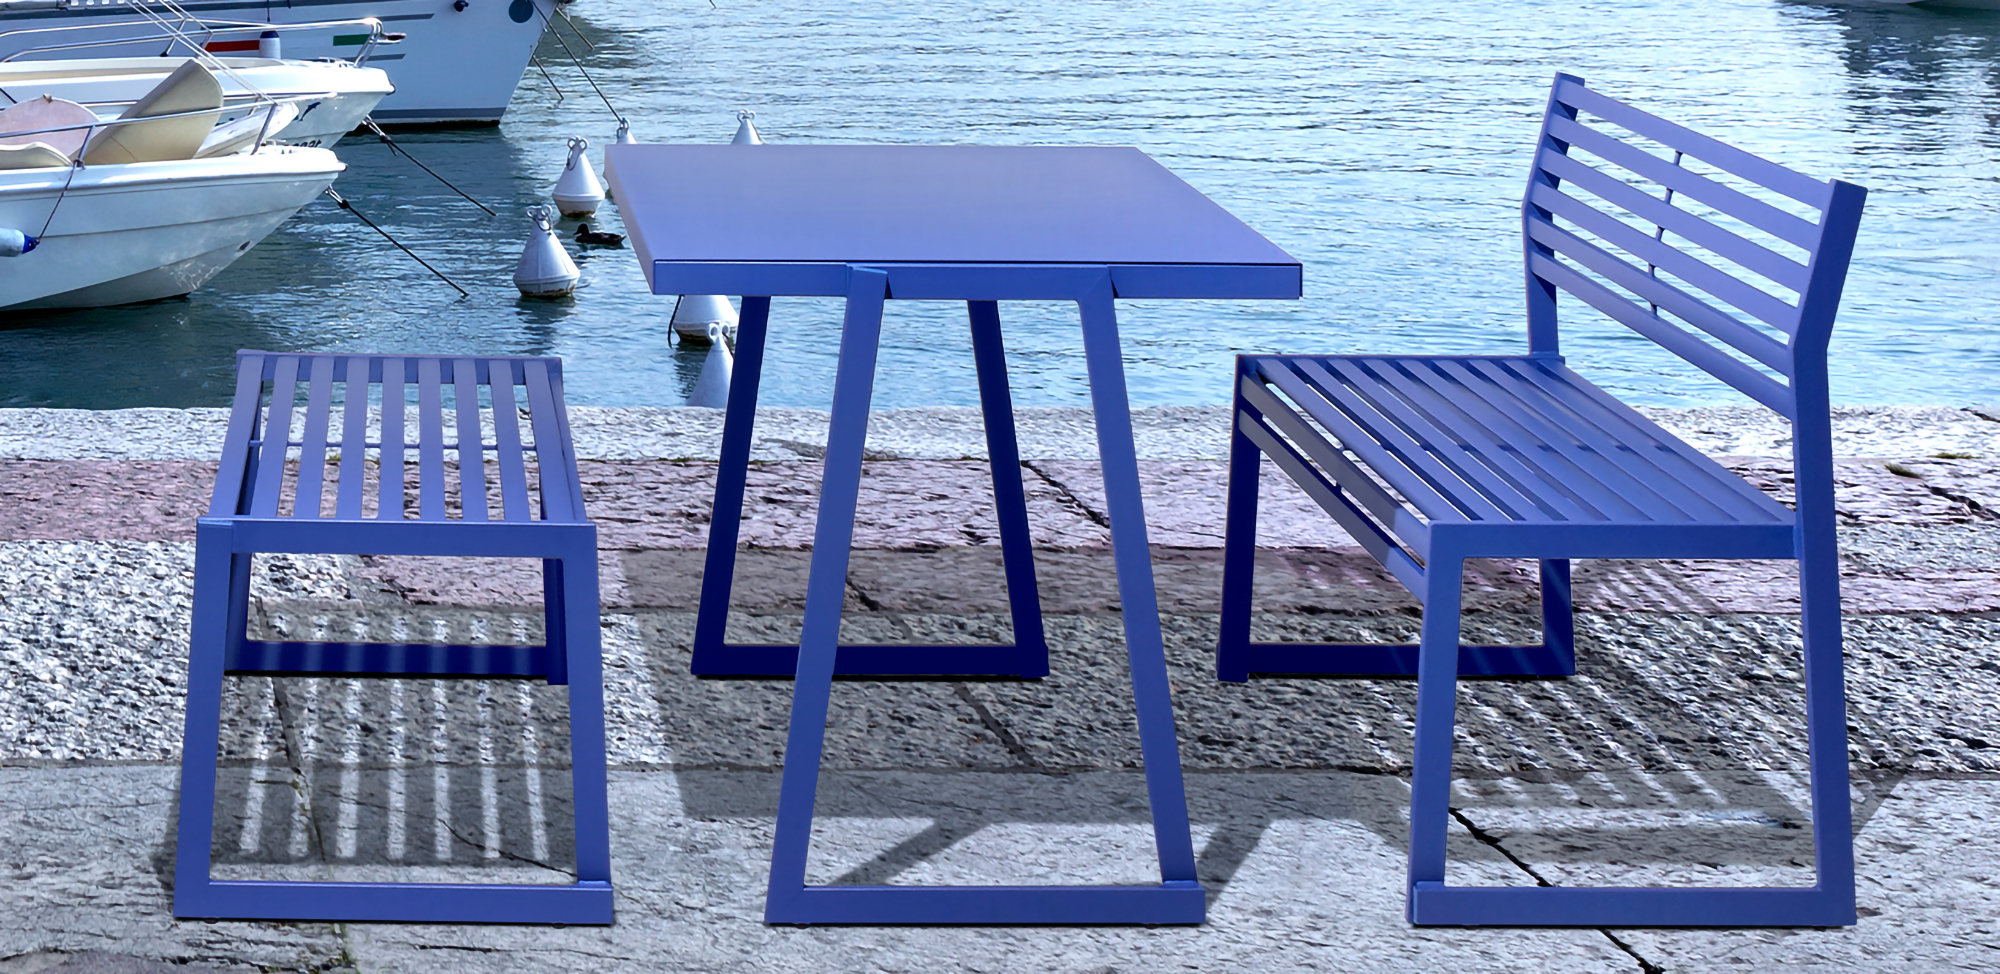 The Cortina table by Via stacks 6 high! Designed and warrantied for use in extreme conditions with salt-water air and high heat and humidity, it's the ideal outdoor solution.